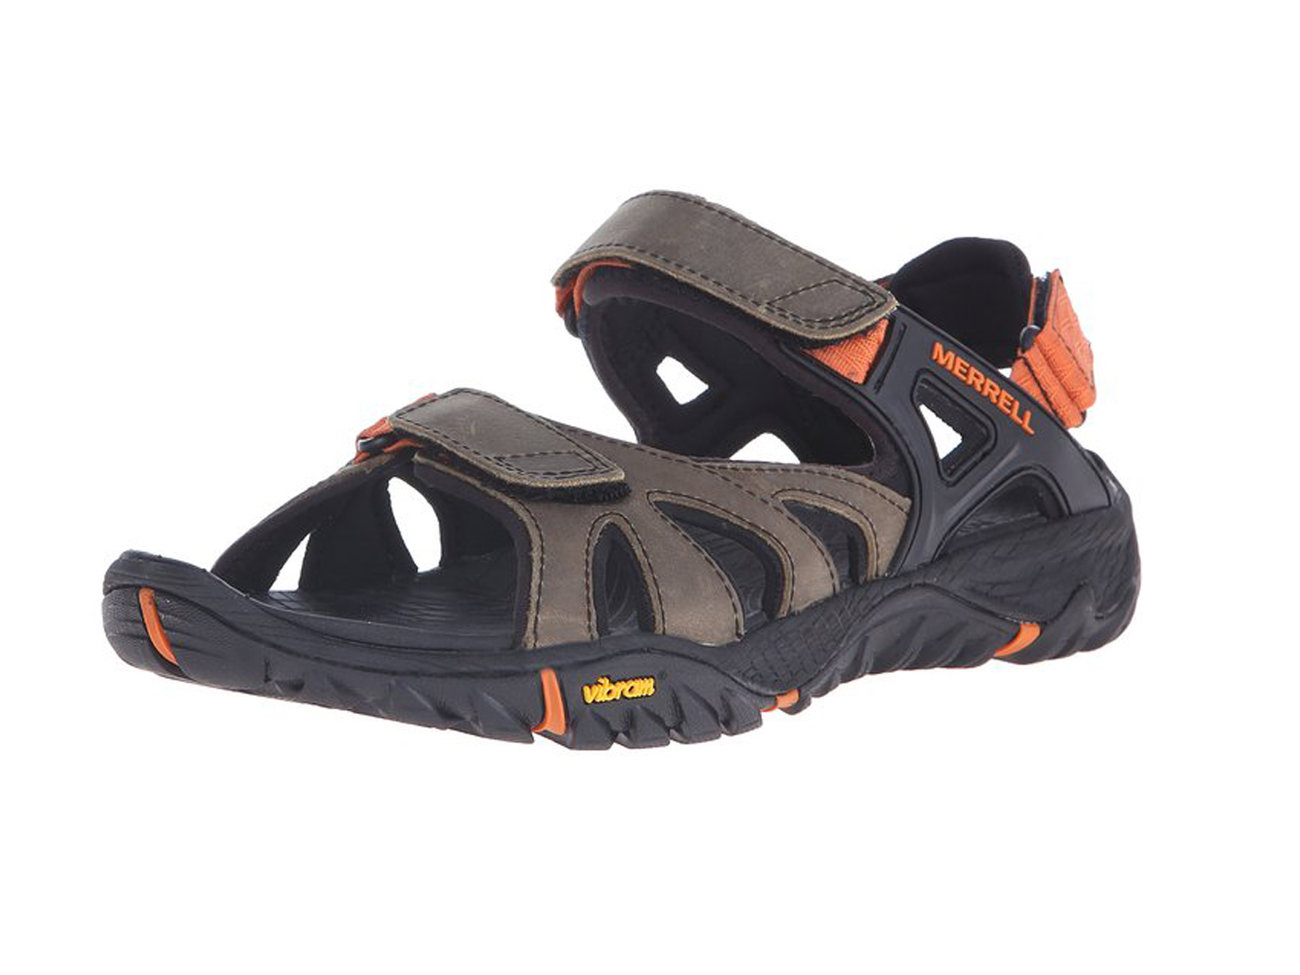 Merrell-All-Out-Blaze-Sieve-Convertible-SANDALMEN0816.jpg